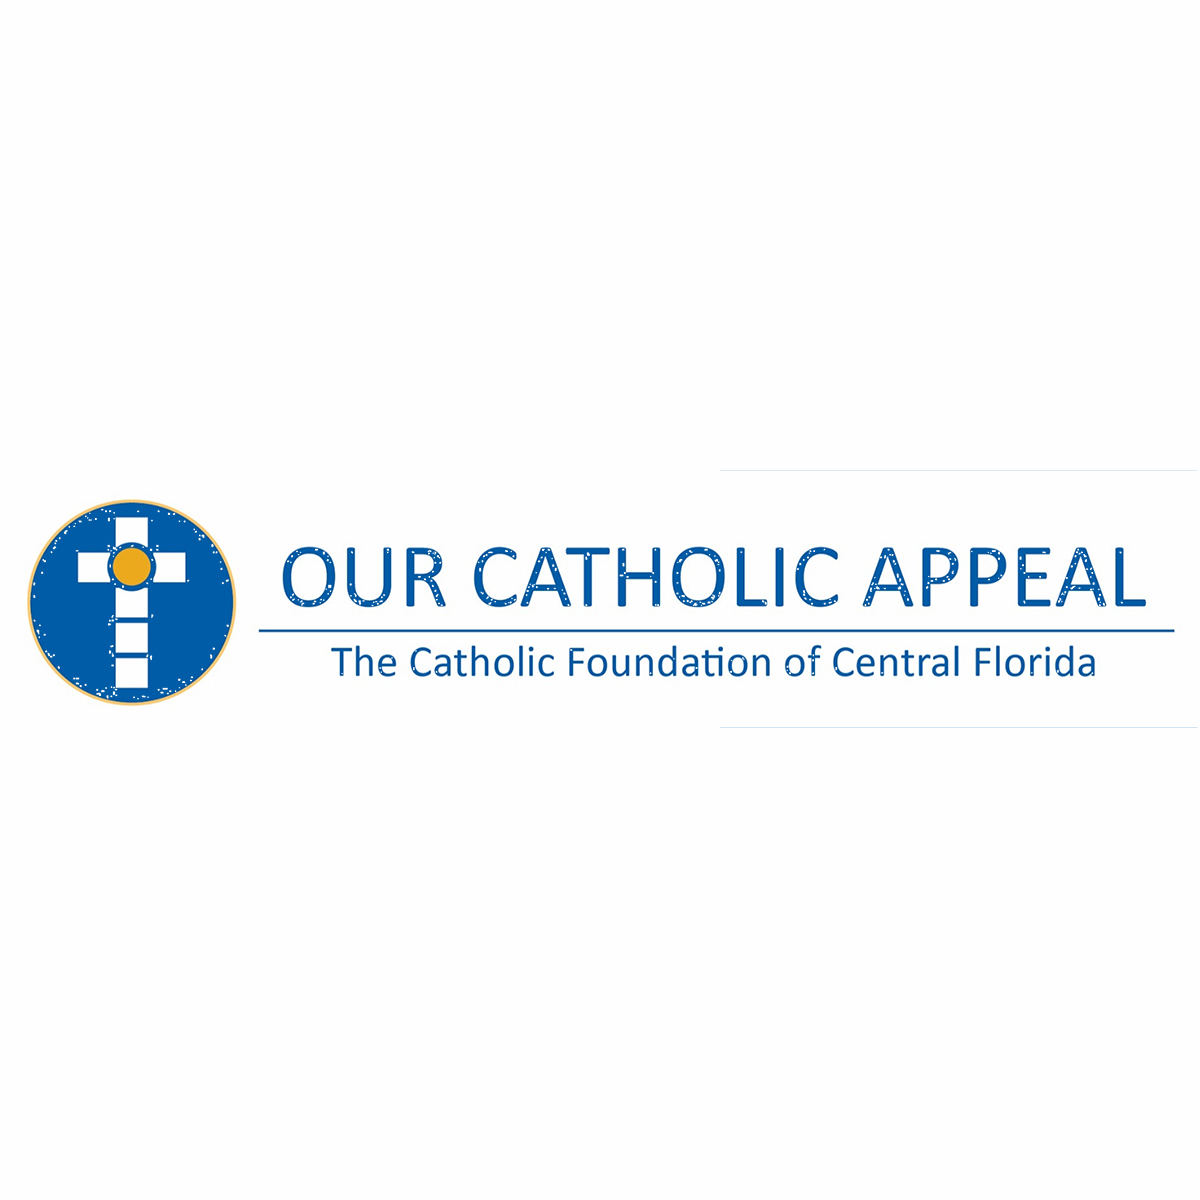 Our Catholic Appeal 2021 starts this weekend